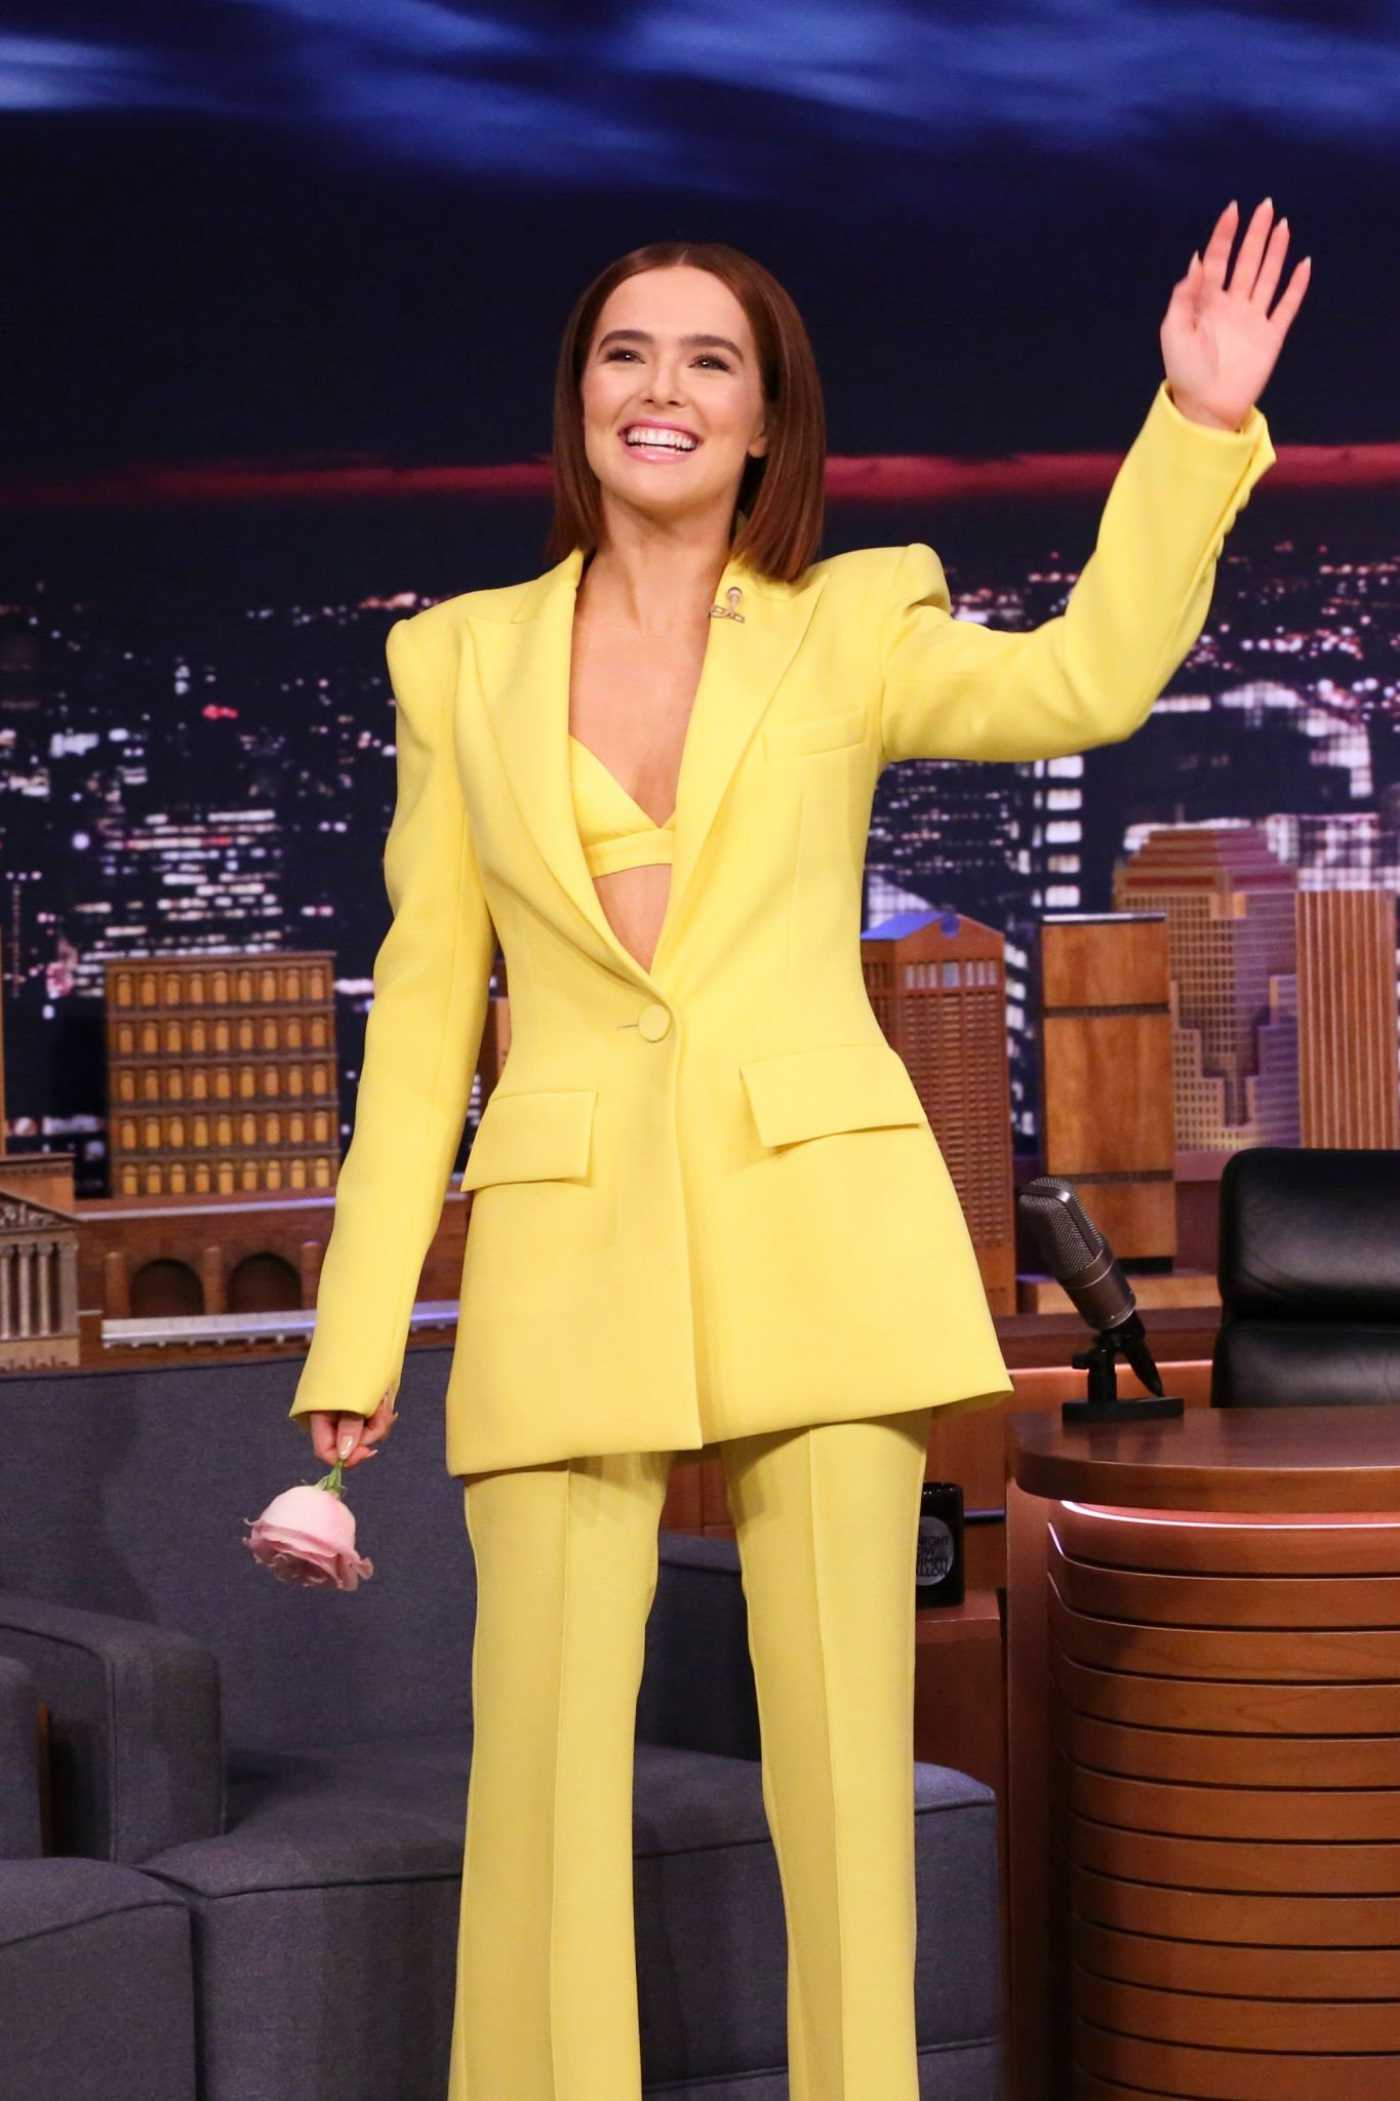 Zoey Deutch Attends The Tonight Show with Jimmy Fallon at Rockefeller Center in NYC 02/14/2020